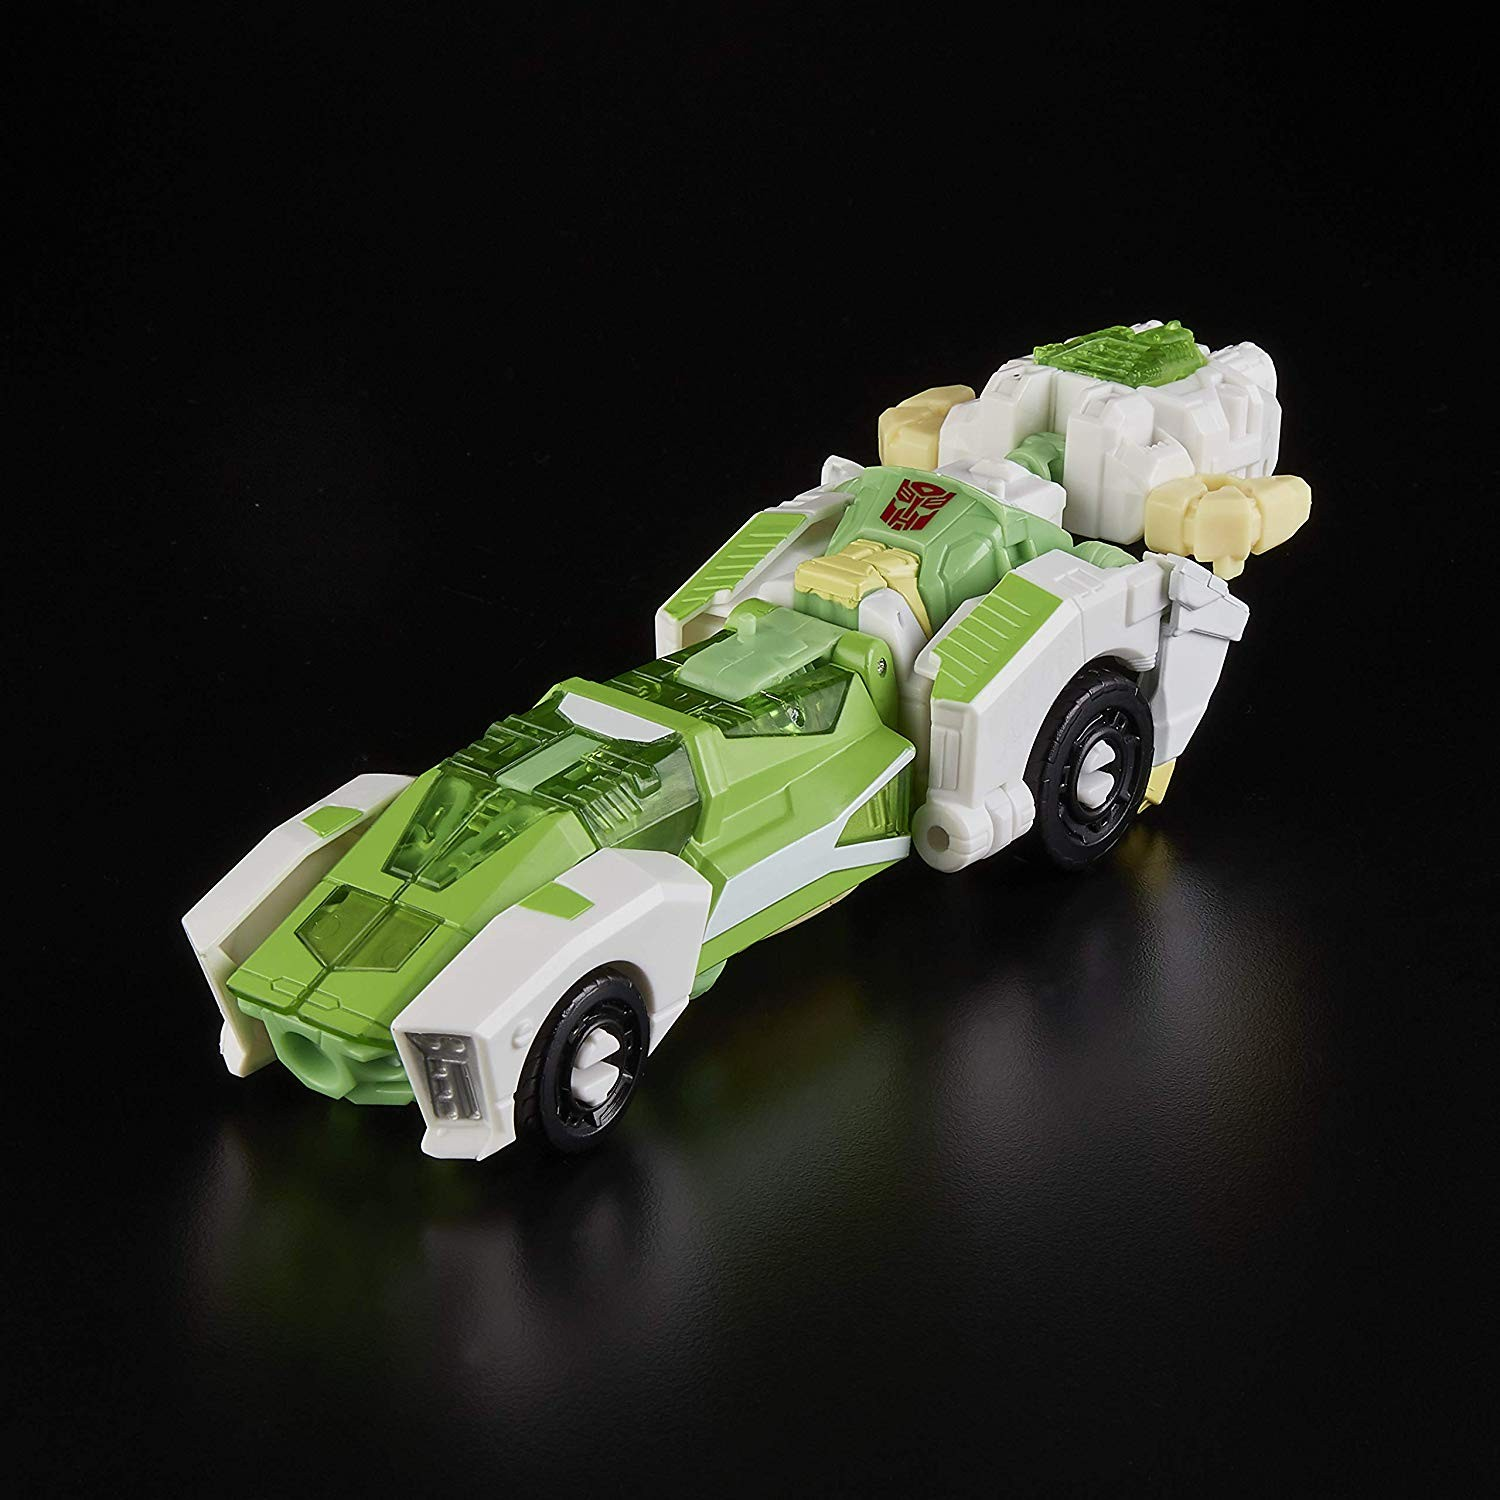 Transformers News: SIEGE Greenlight with Dazzlestrike now available on Amazon.com